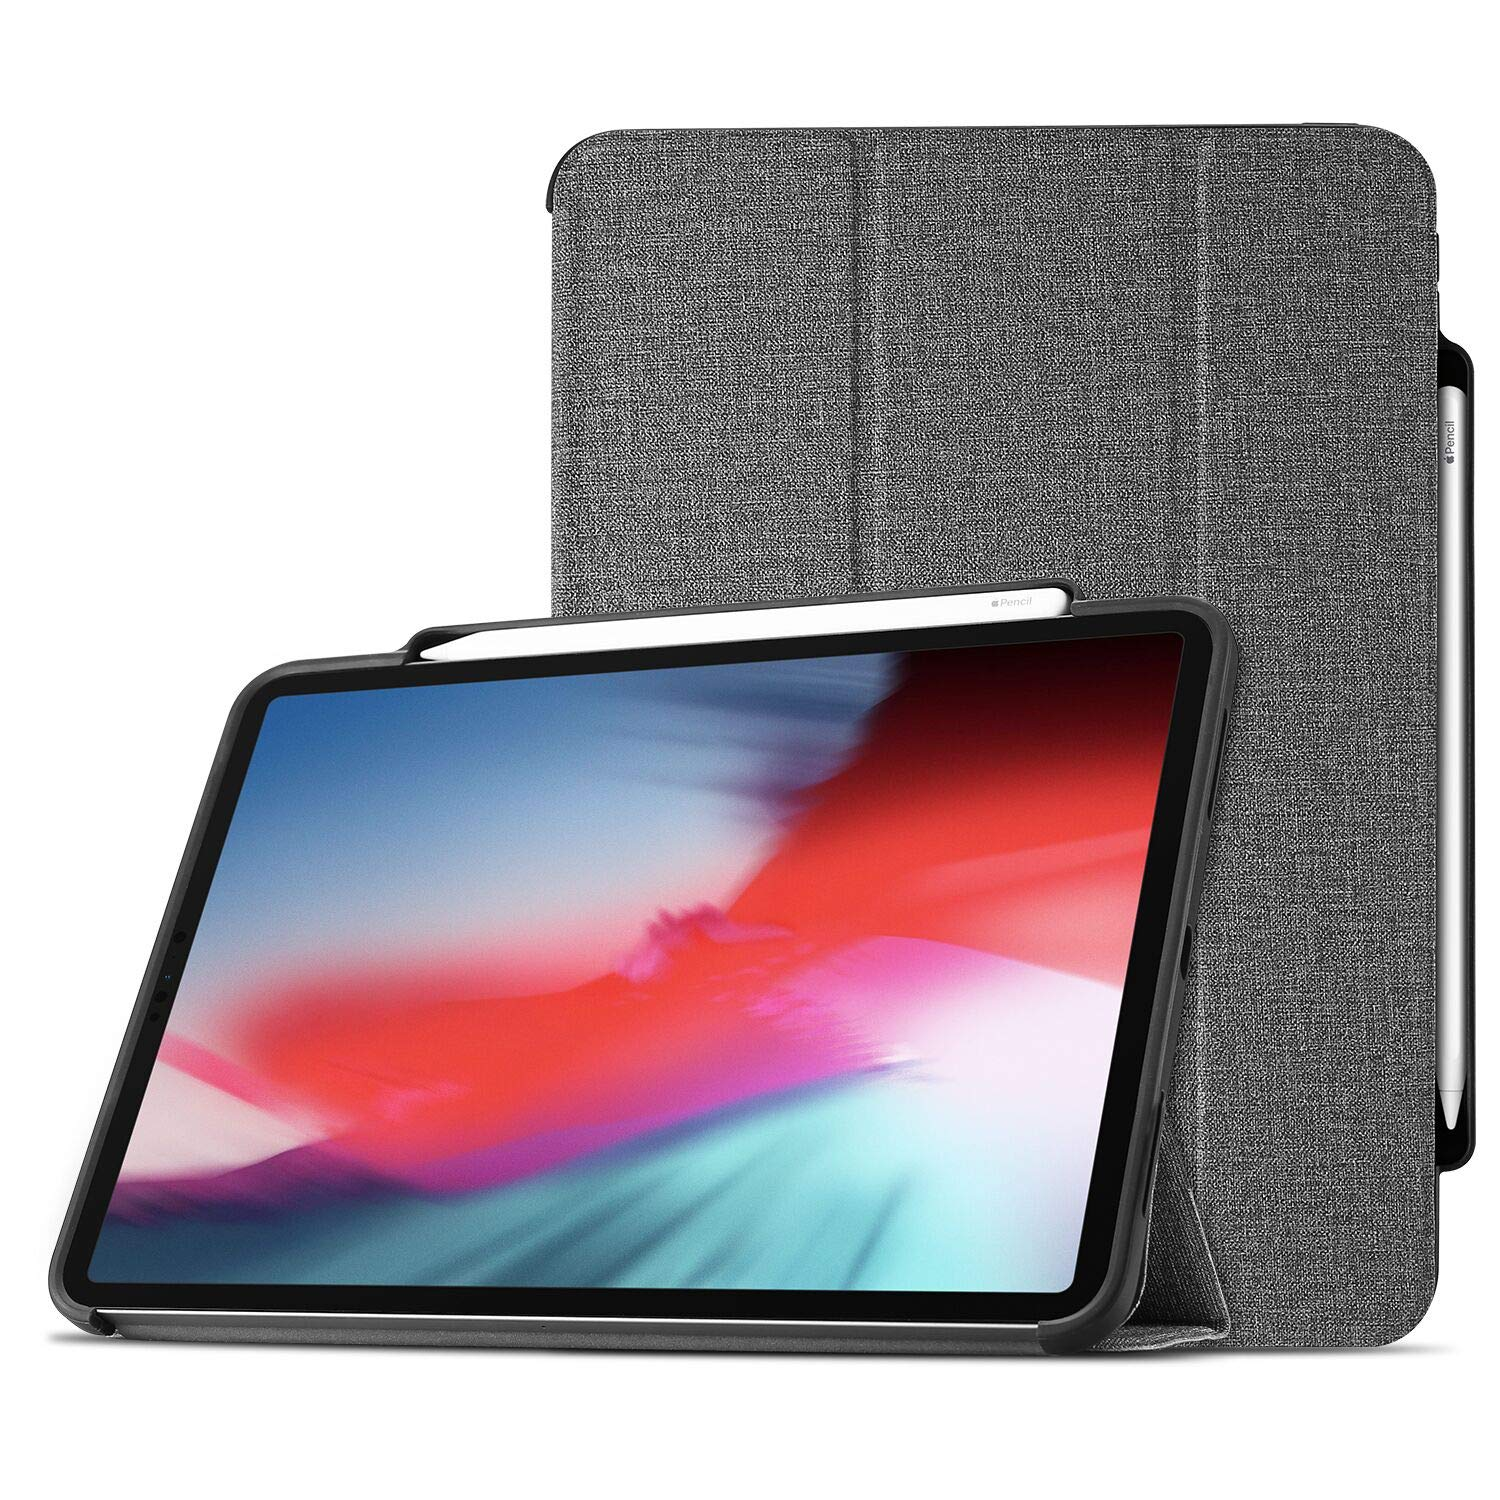 ProCase iPad Pro 11 Case 2018 with Apple Pencil Holder [Support Apple Pencil Charging], Protective Smart Cover Shell Stand Folio Case for Apple iPad Pro 11 Inch 2018 Release –Gray